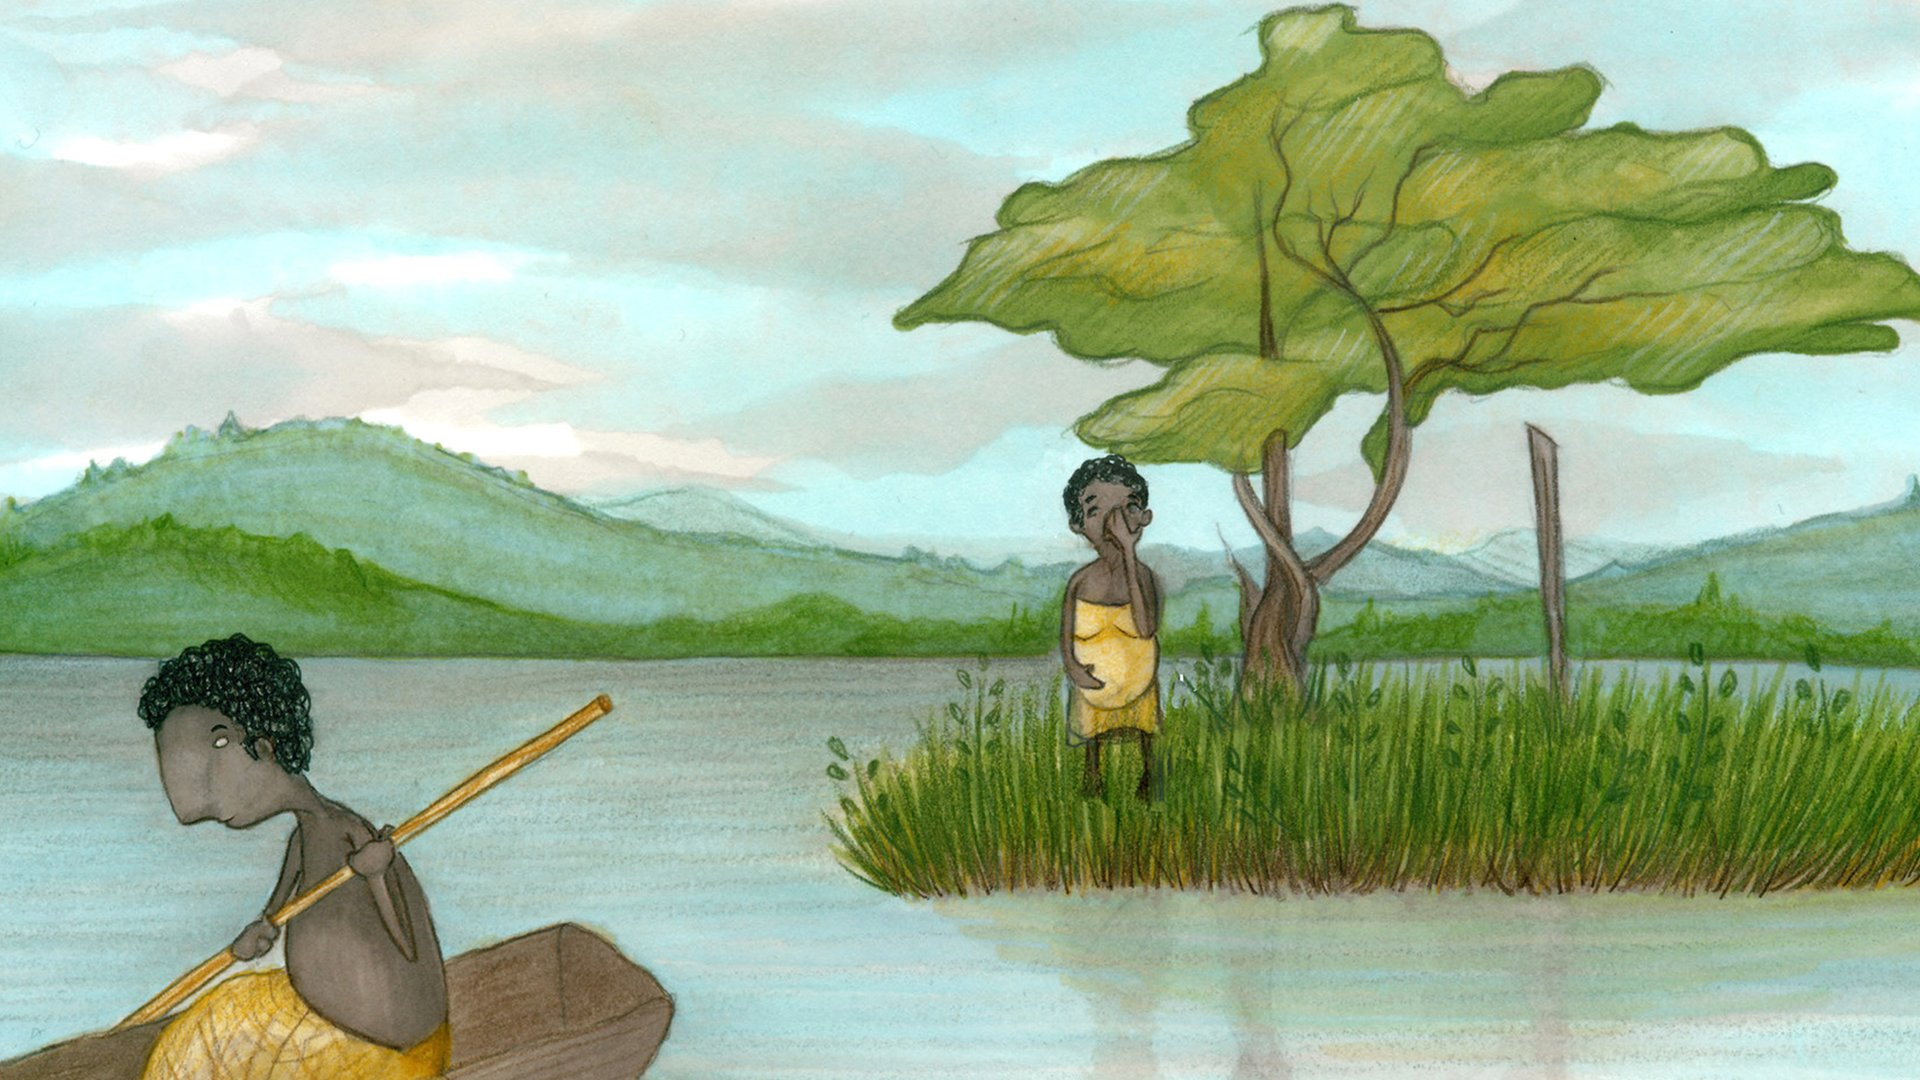 Uganda's Punishment Island: 'I was left to die on an island for getting pregnant'